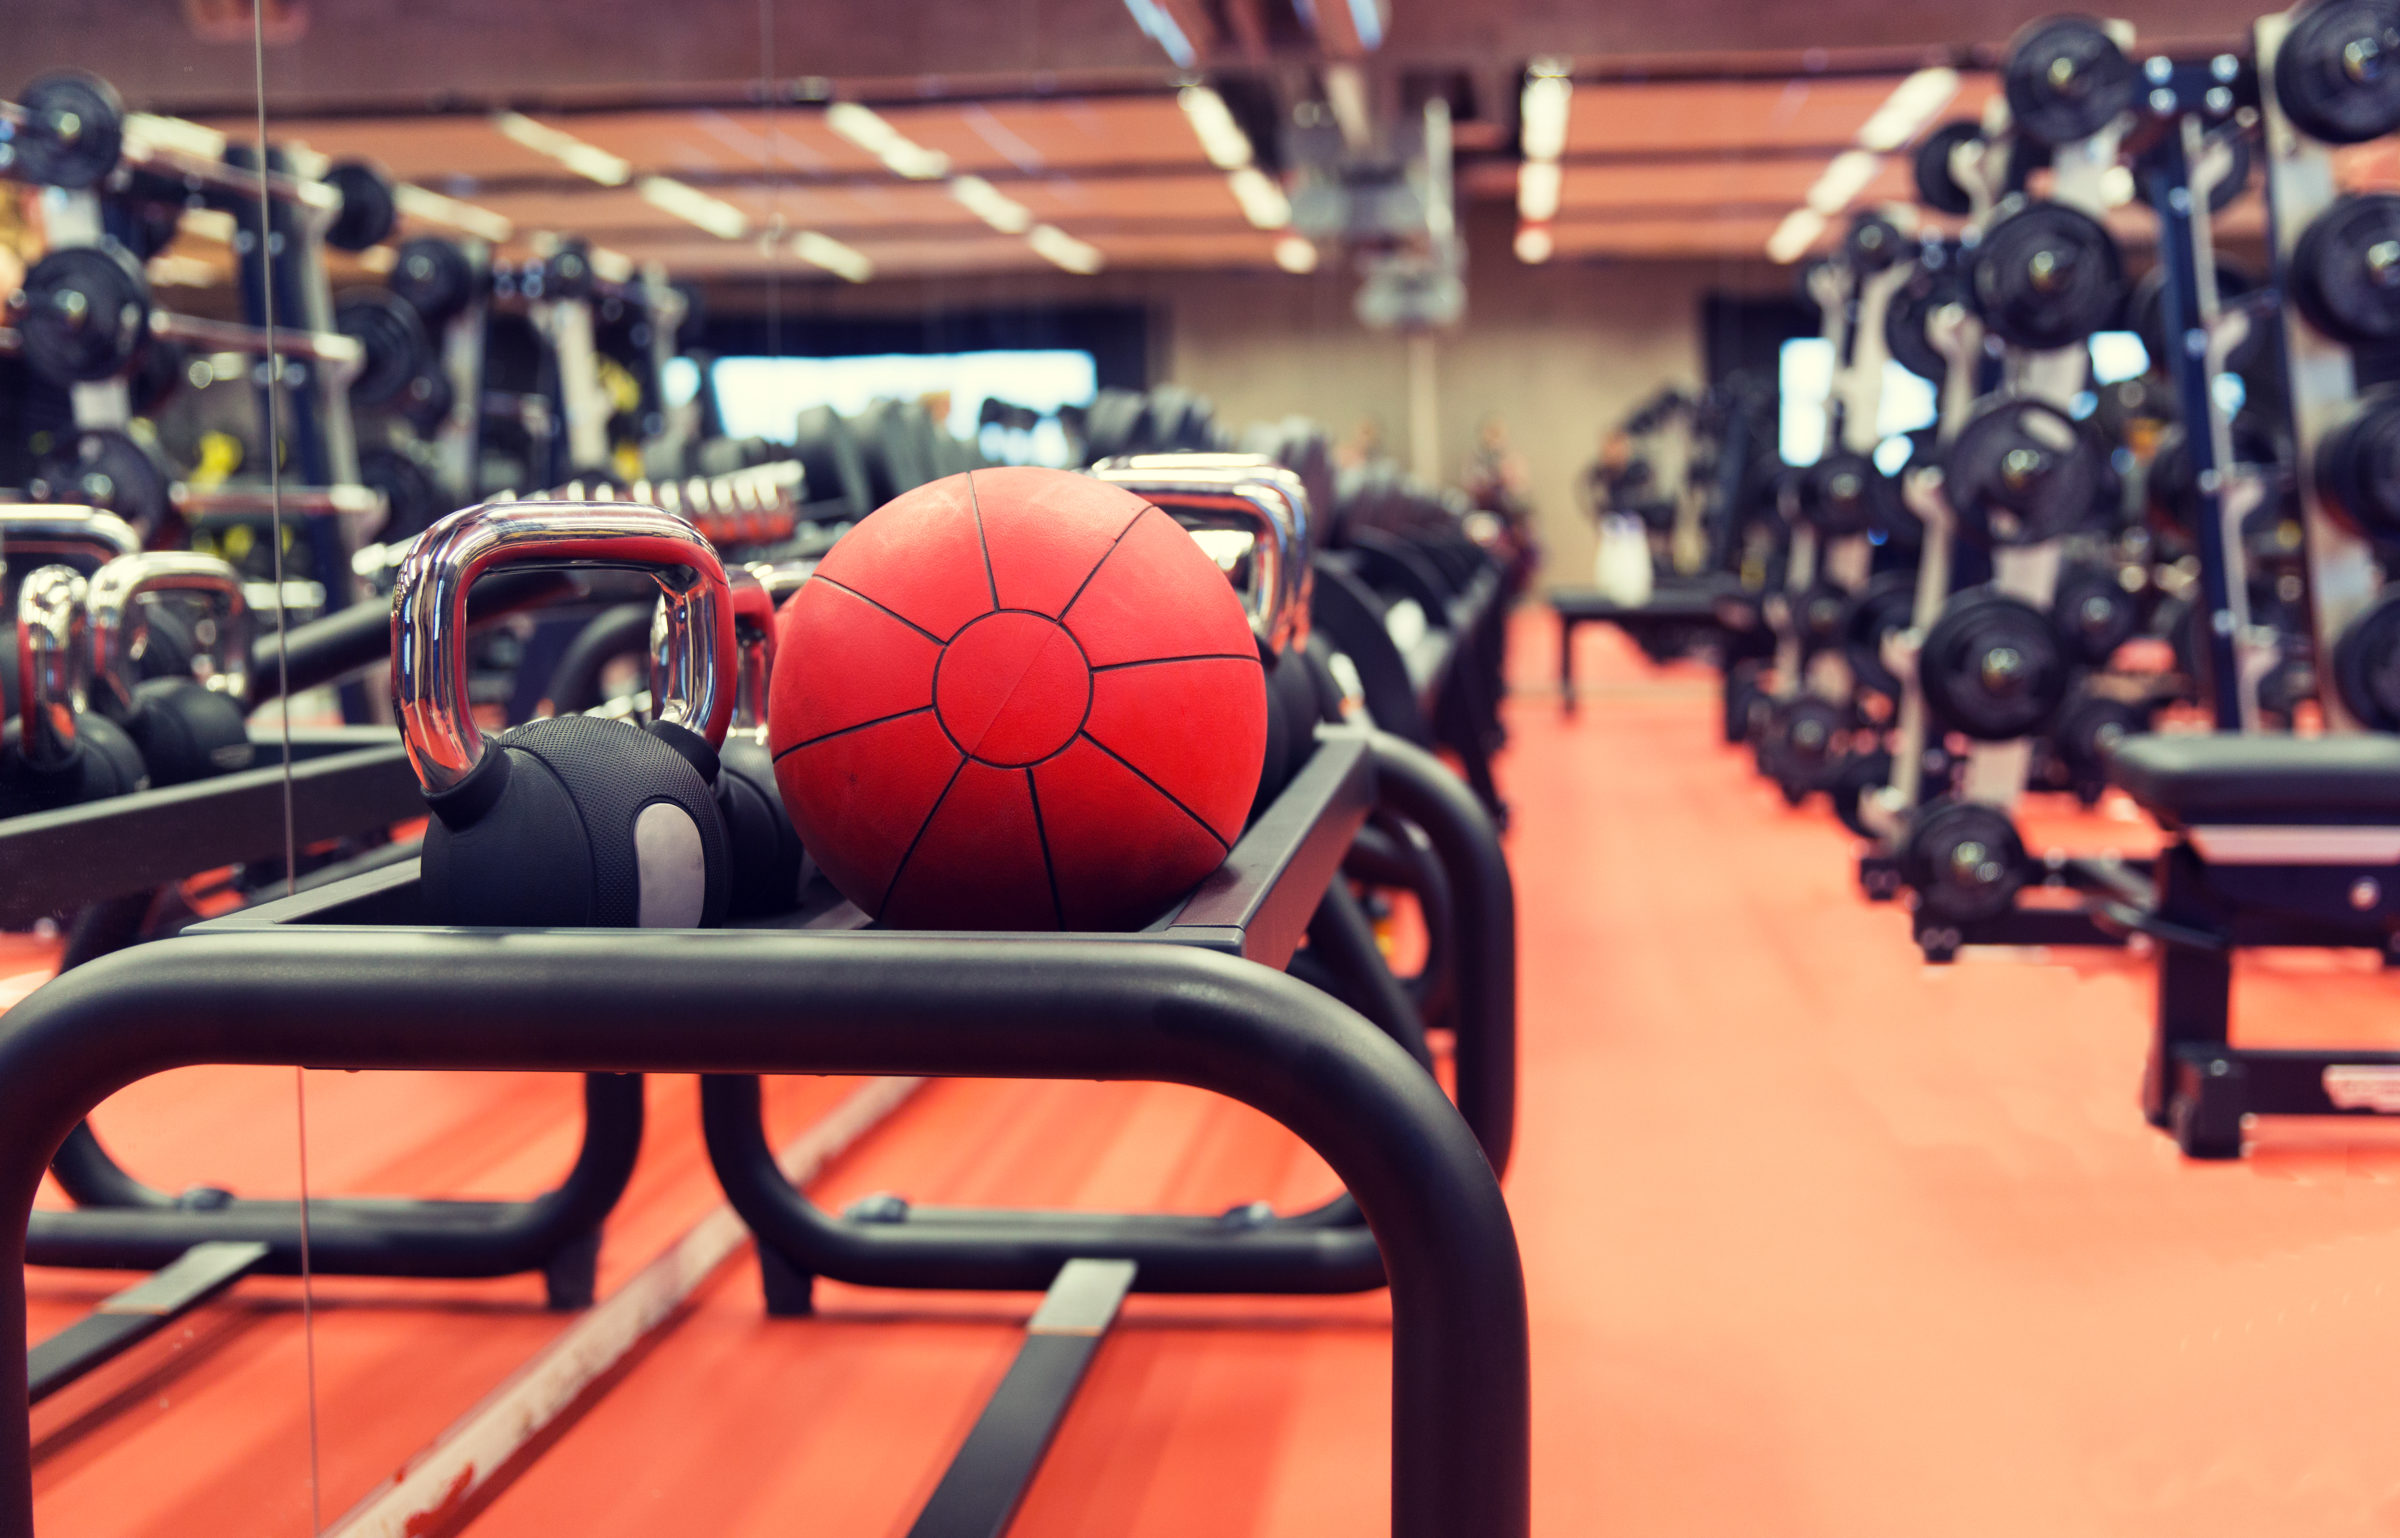 medicine ball and sports equipment in gym PE857JR